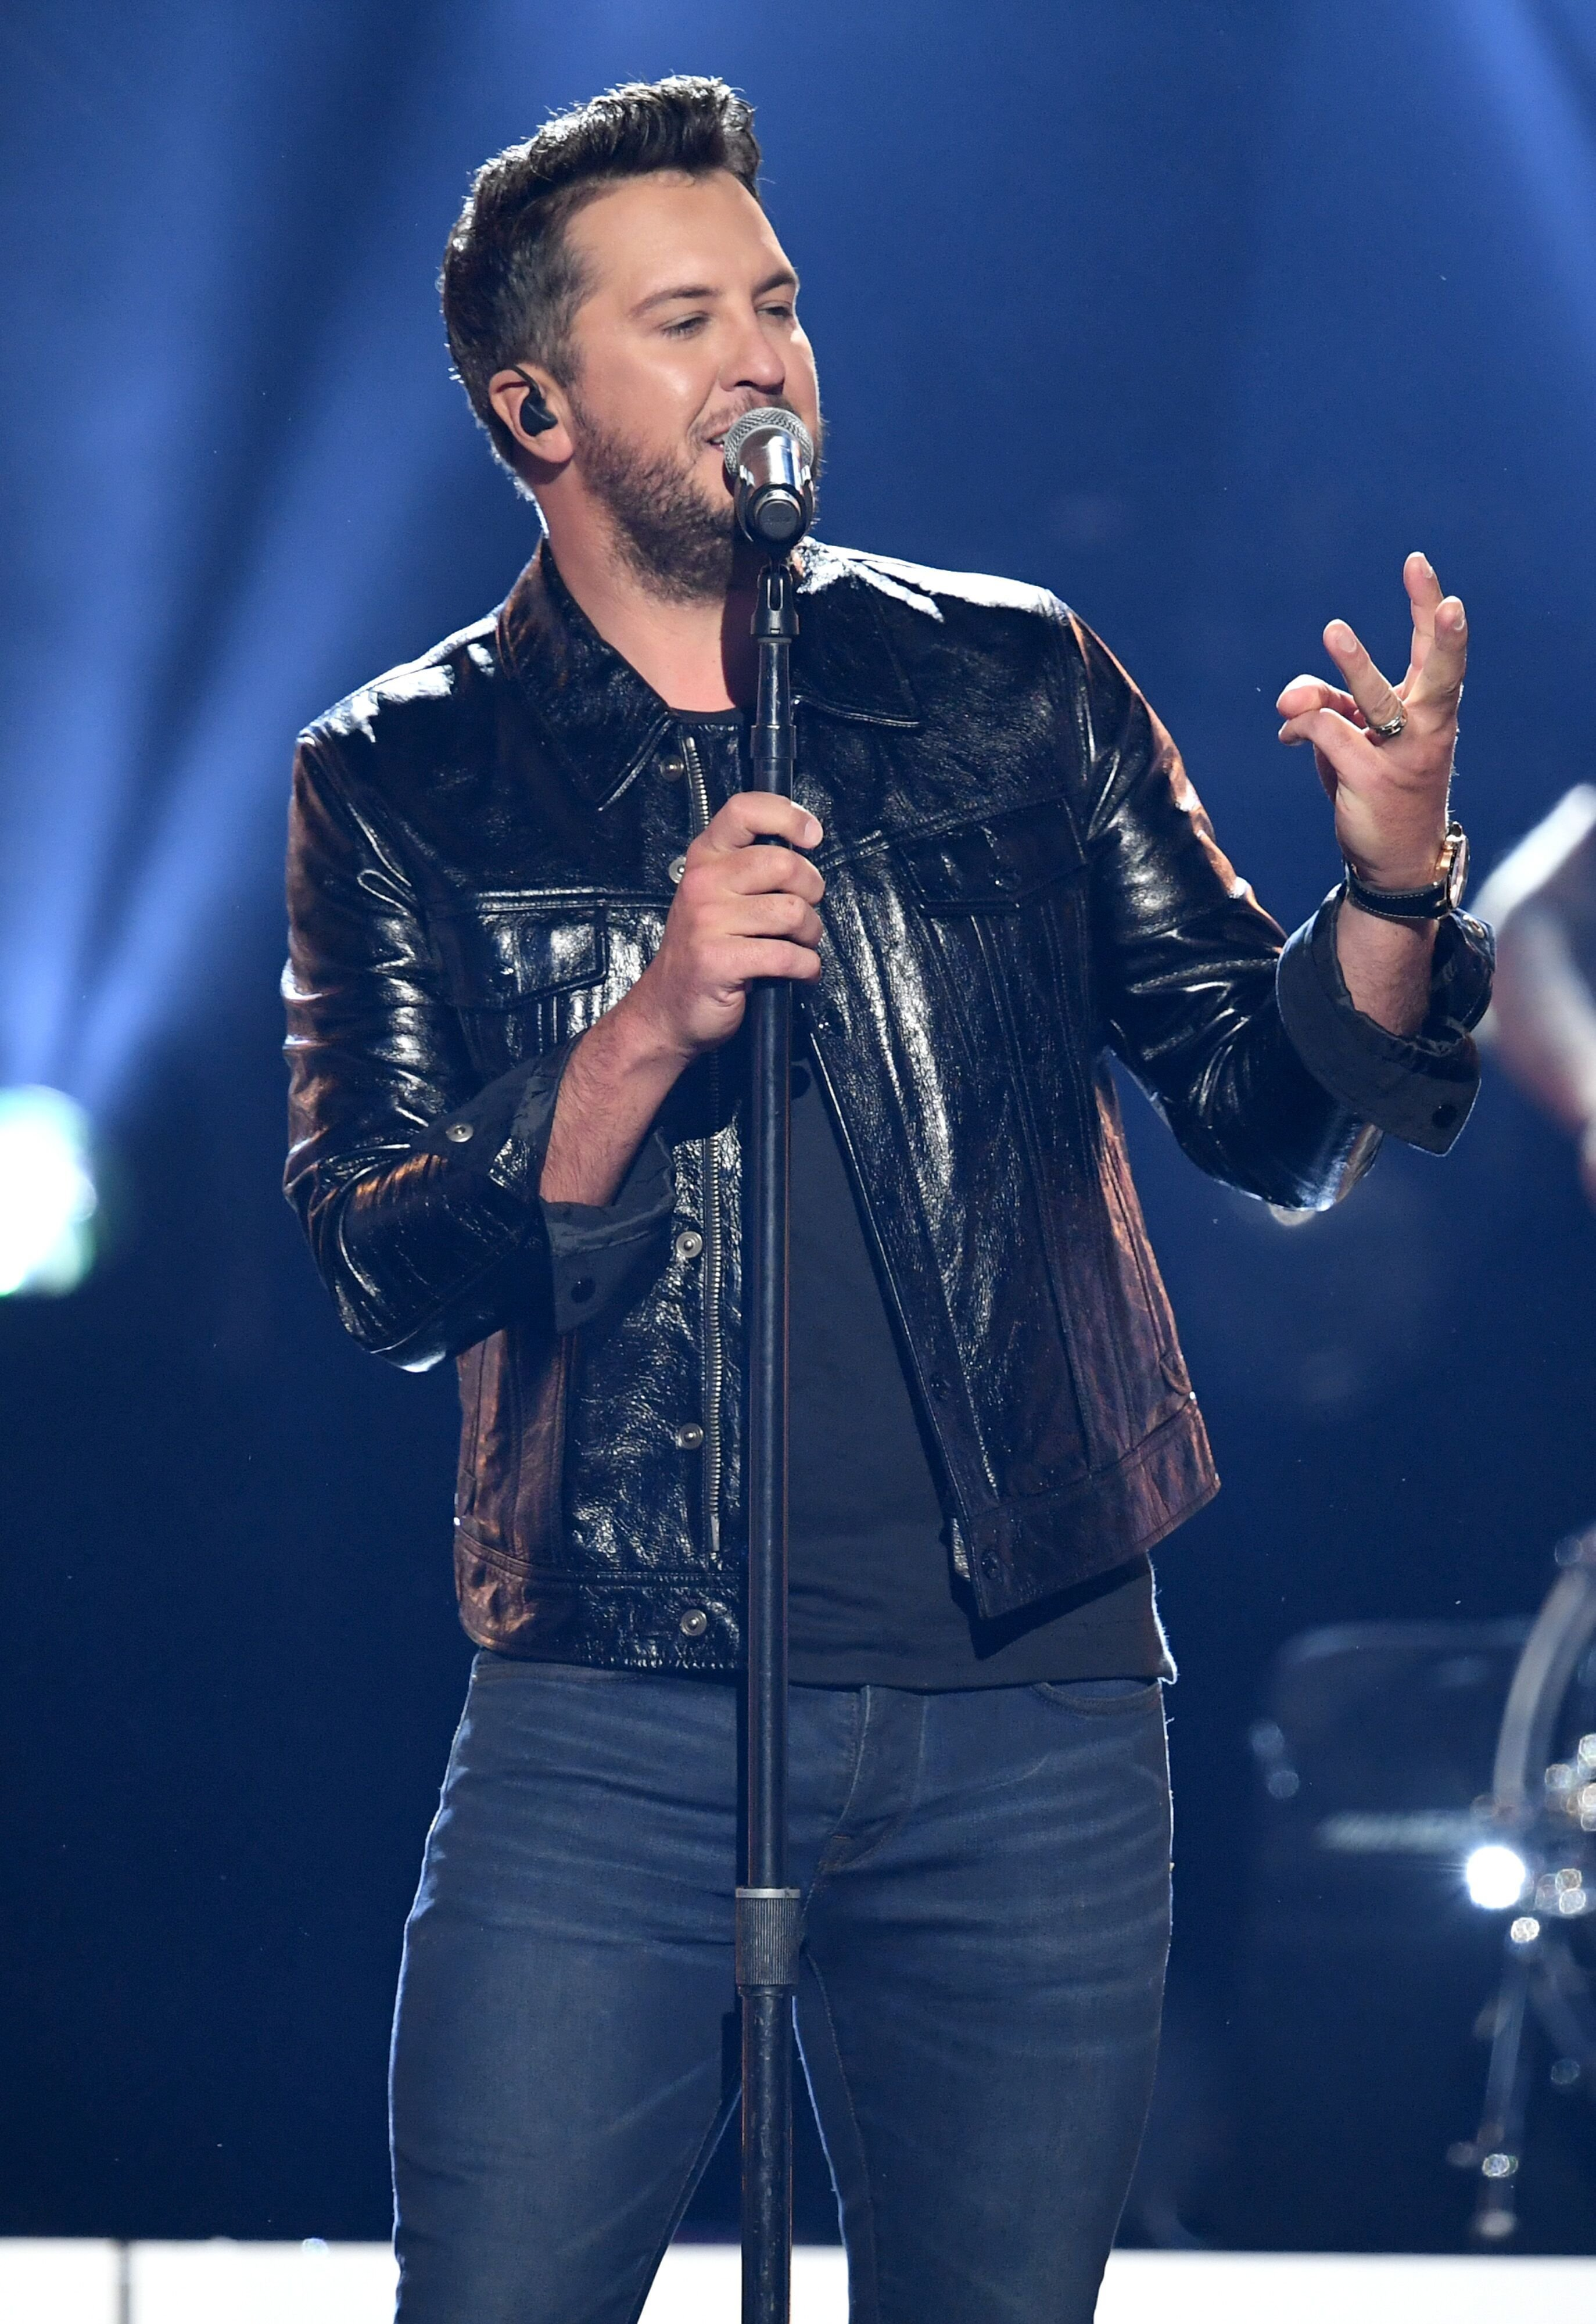 Luke Bryan performs onstage during the 54th Academy Of Country Music Awards at MGM Grand Garden Arena on April 07, 2019 in Las Vegas, Nevada | Photo: Kevin Winter/Getty Images